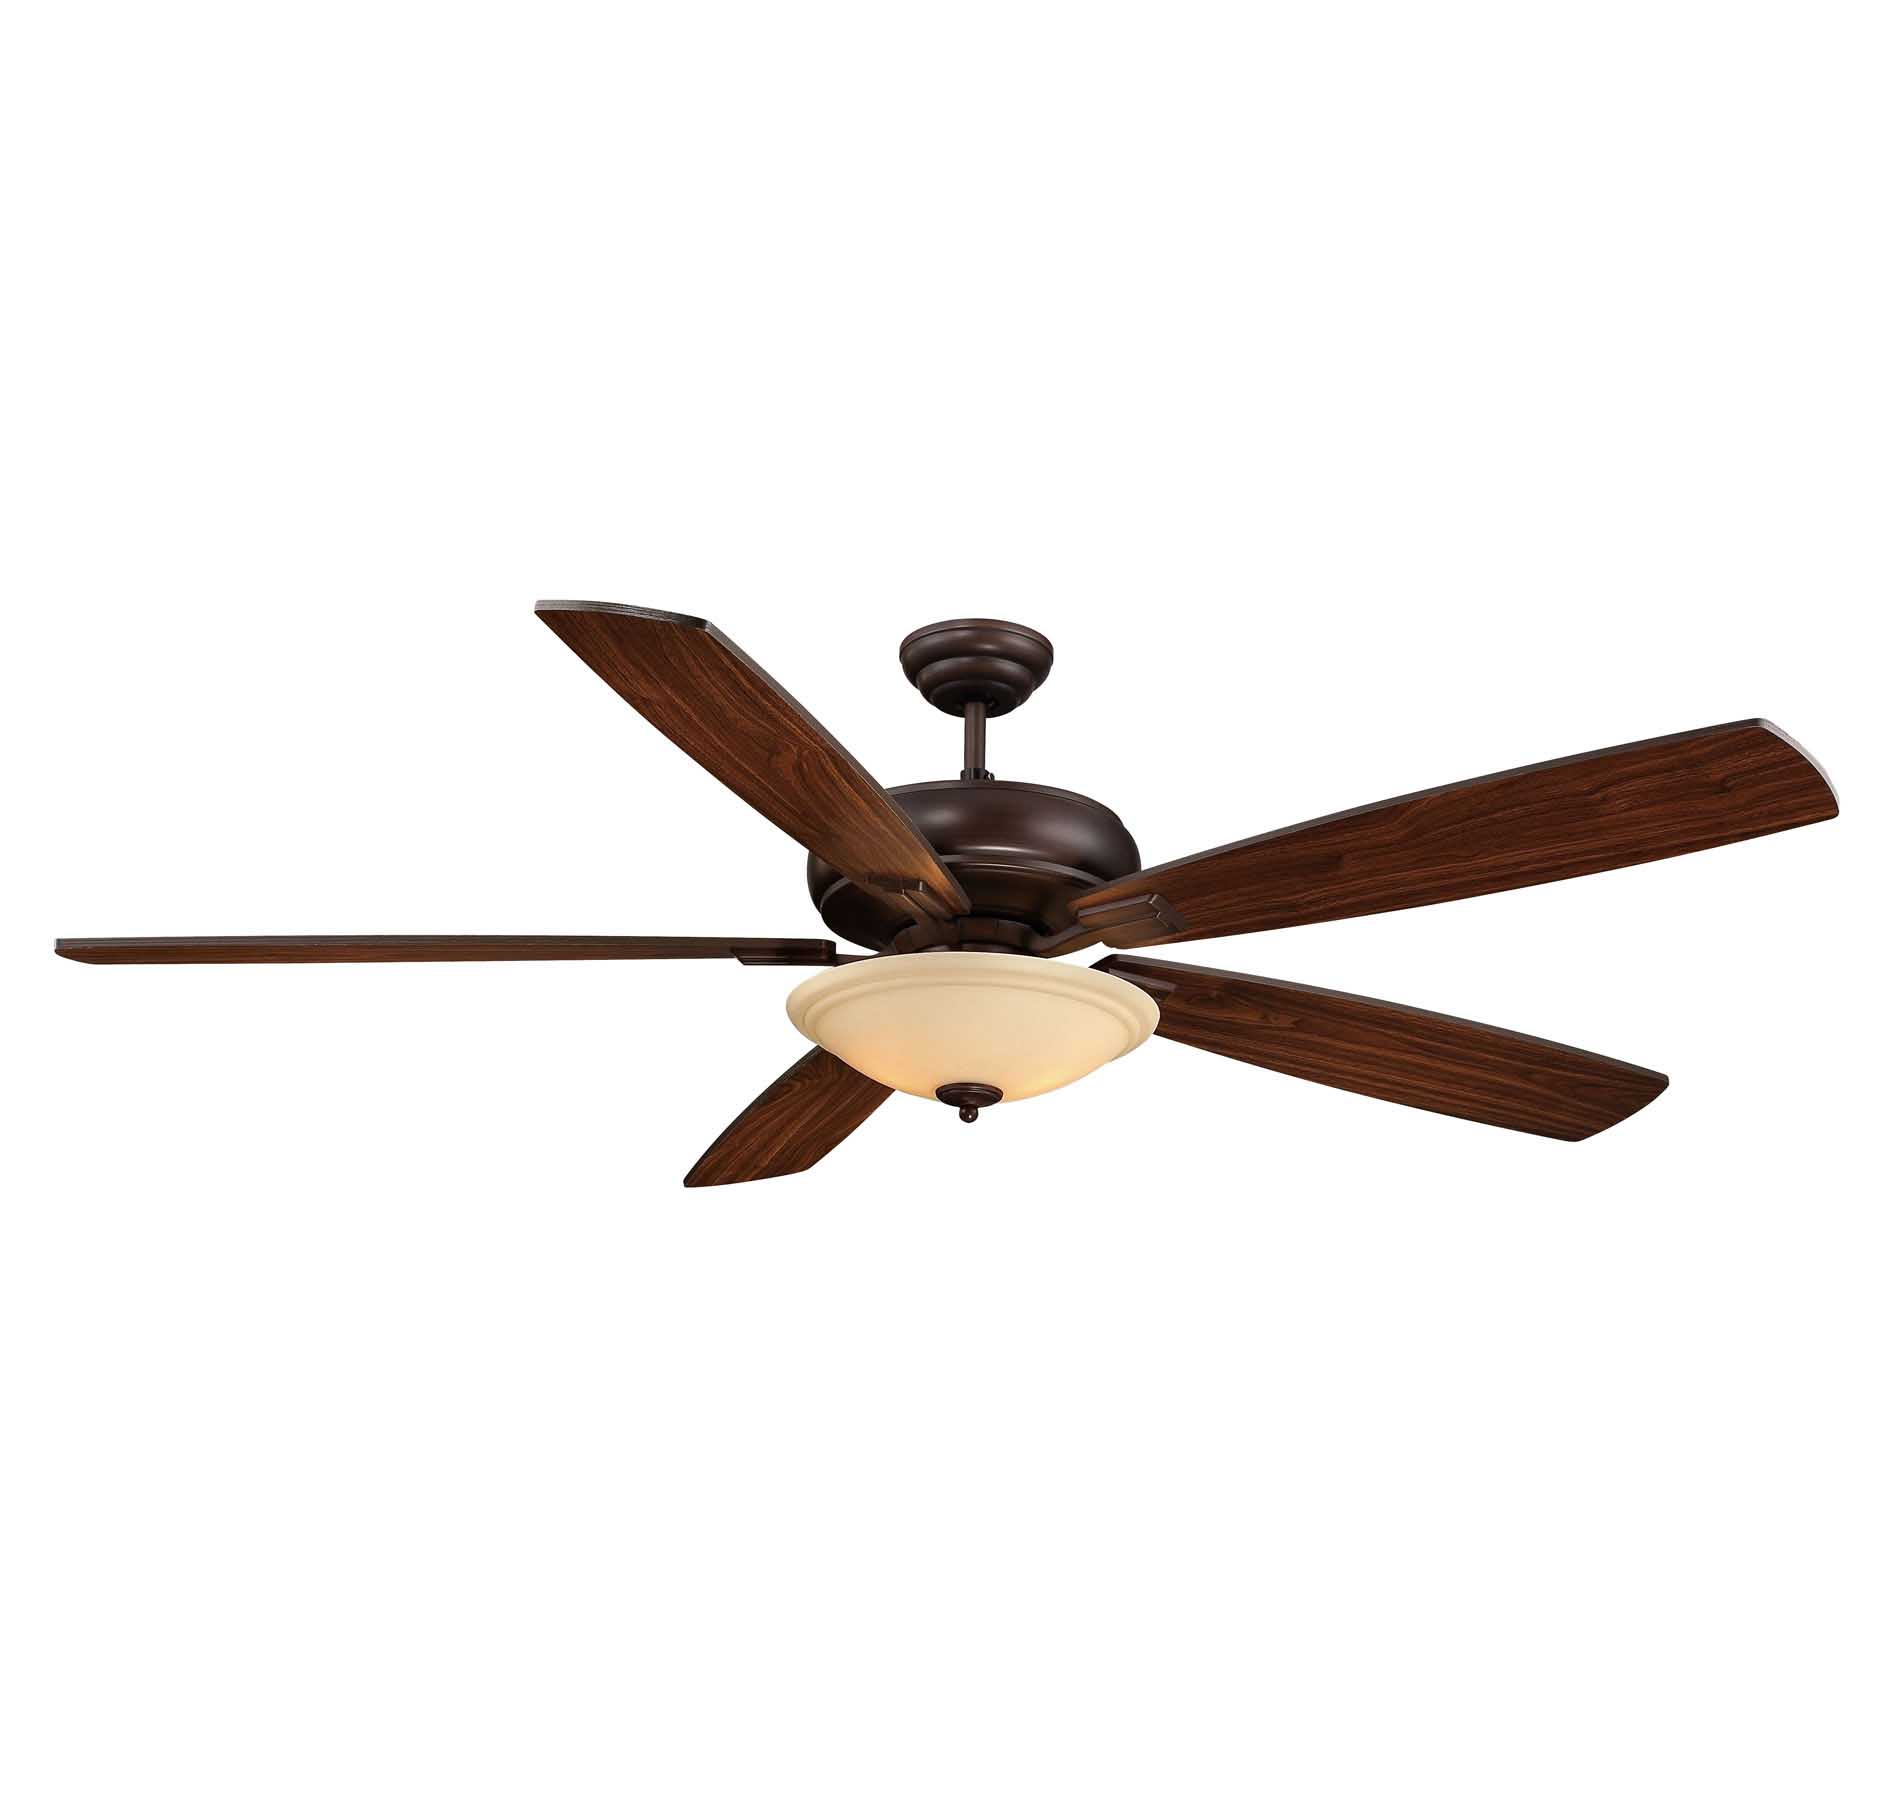 star ceiling fan photo - 8